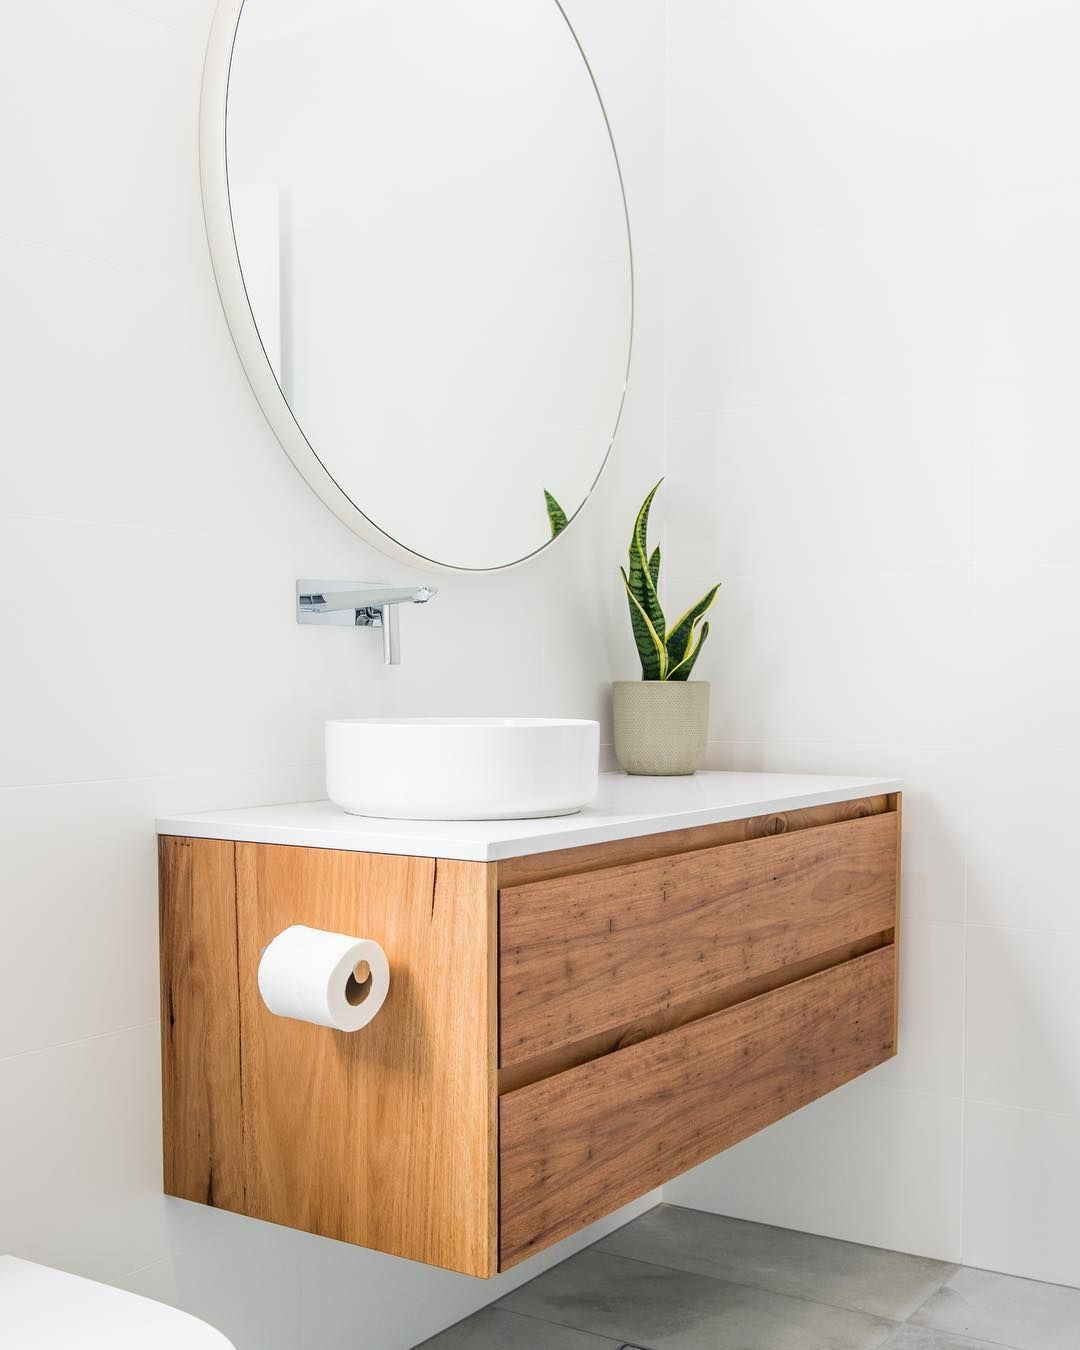 Round Mirror Oak Floating Vanity Grey Floor Floating Bathroom Vanities Diy Bathroom Vanity Grey Bathroom Floor